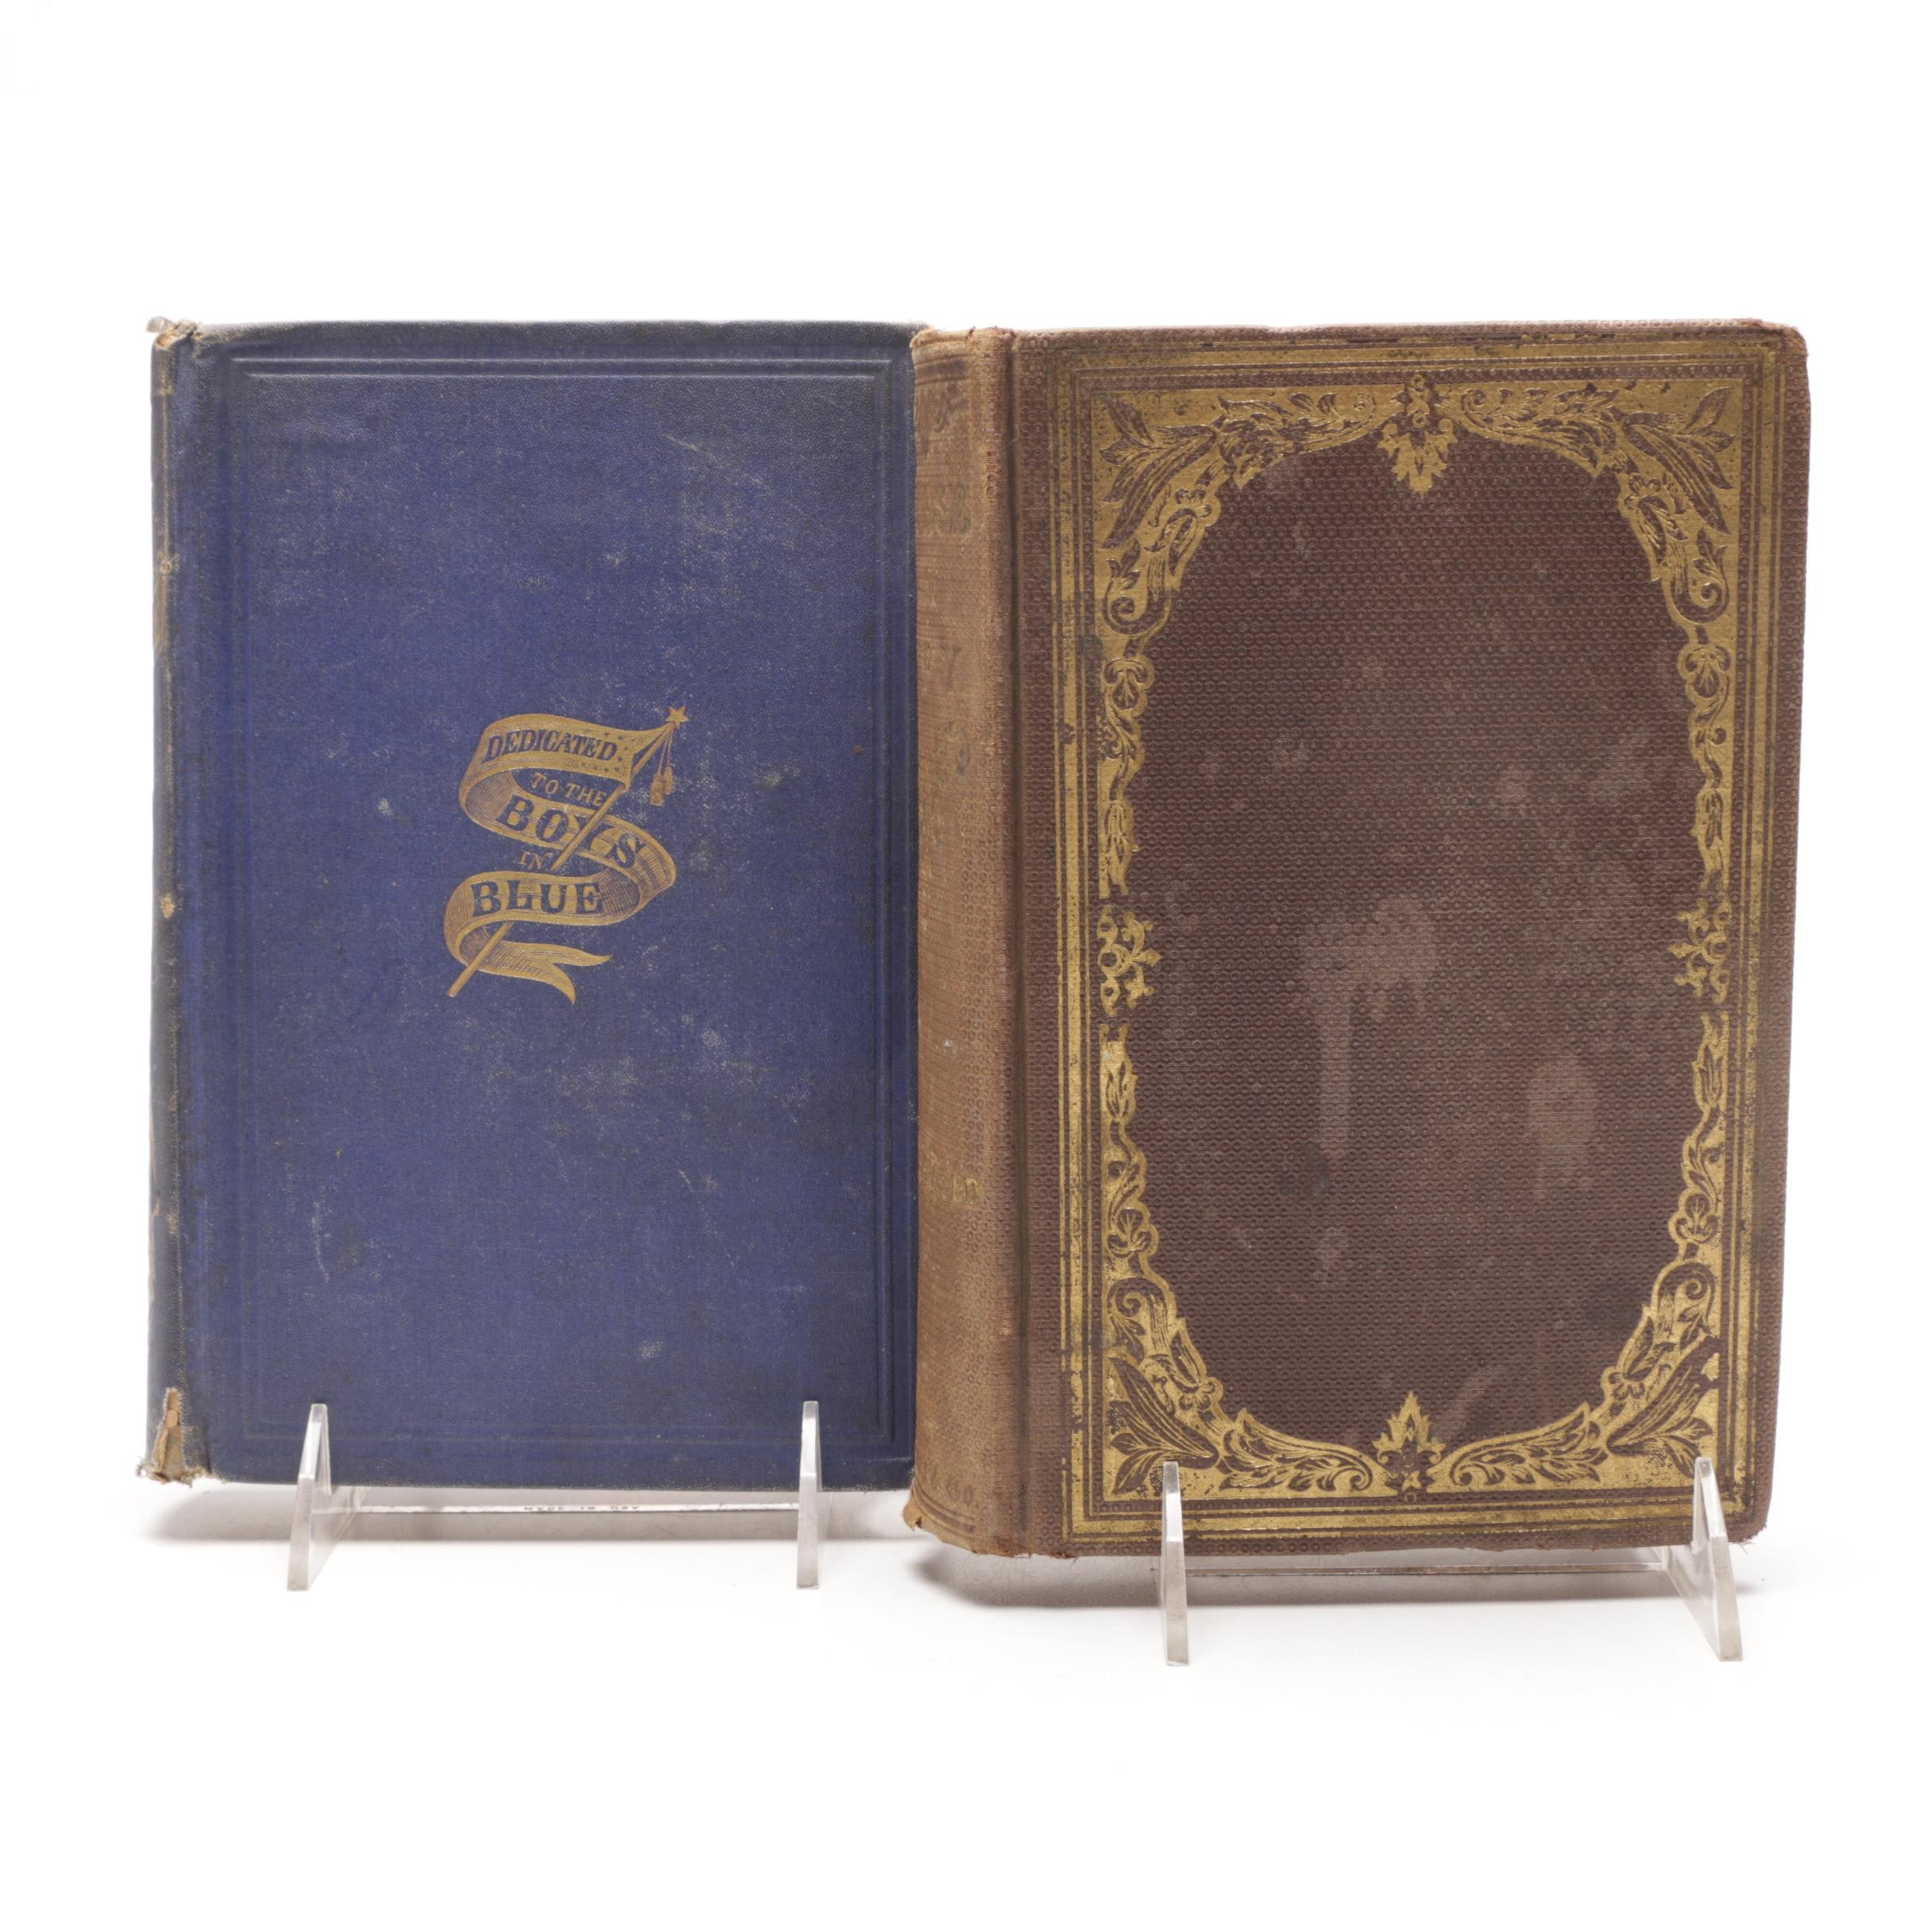 Antique Books on the Union Army featuring First Editions